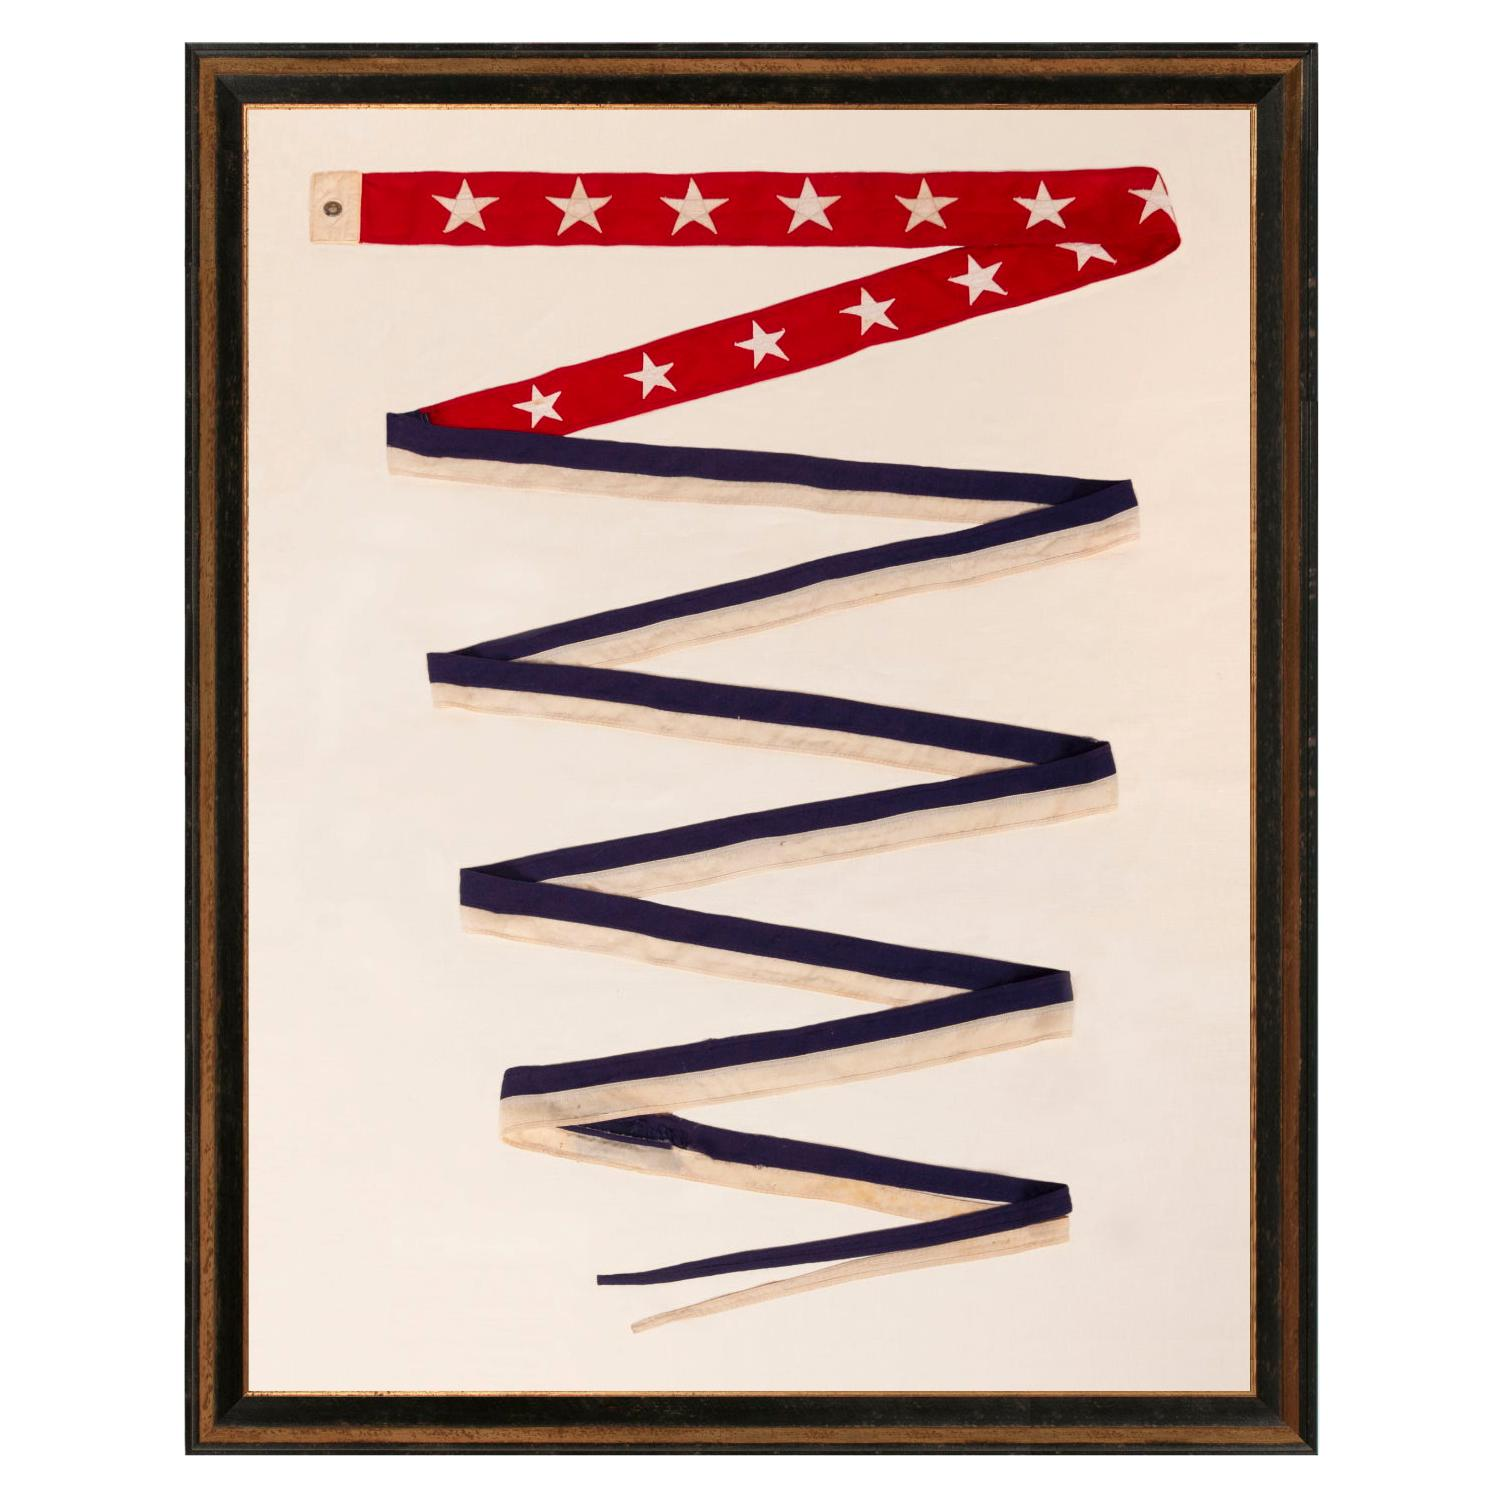 U.S War Department Commissioning Pennant with 13 Stars